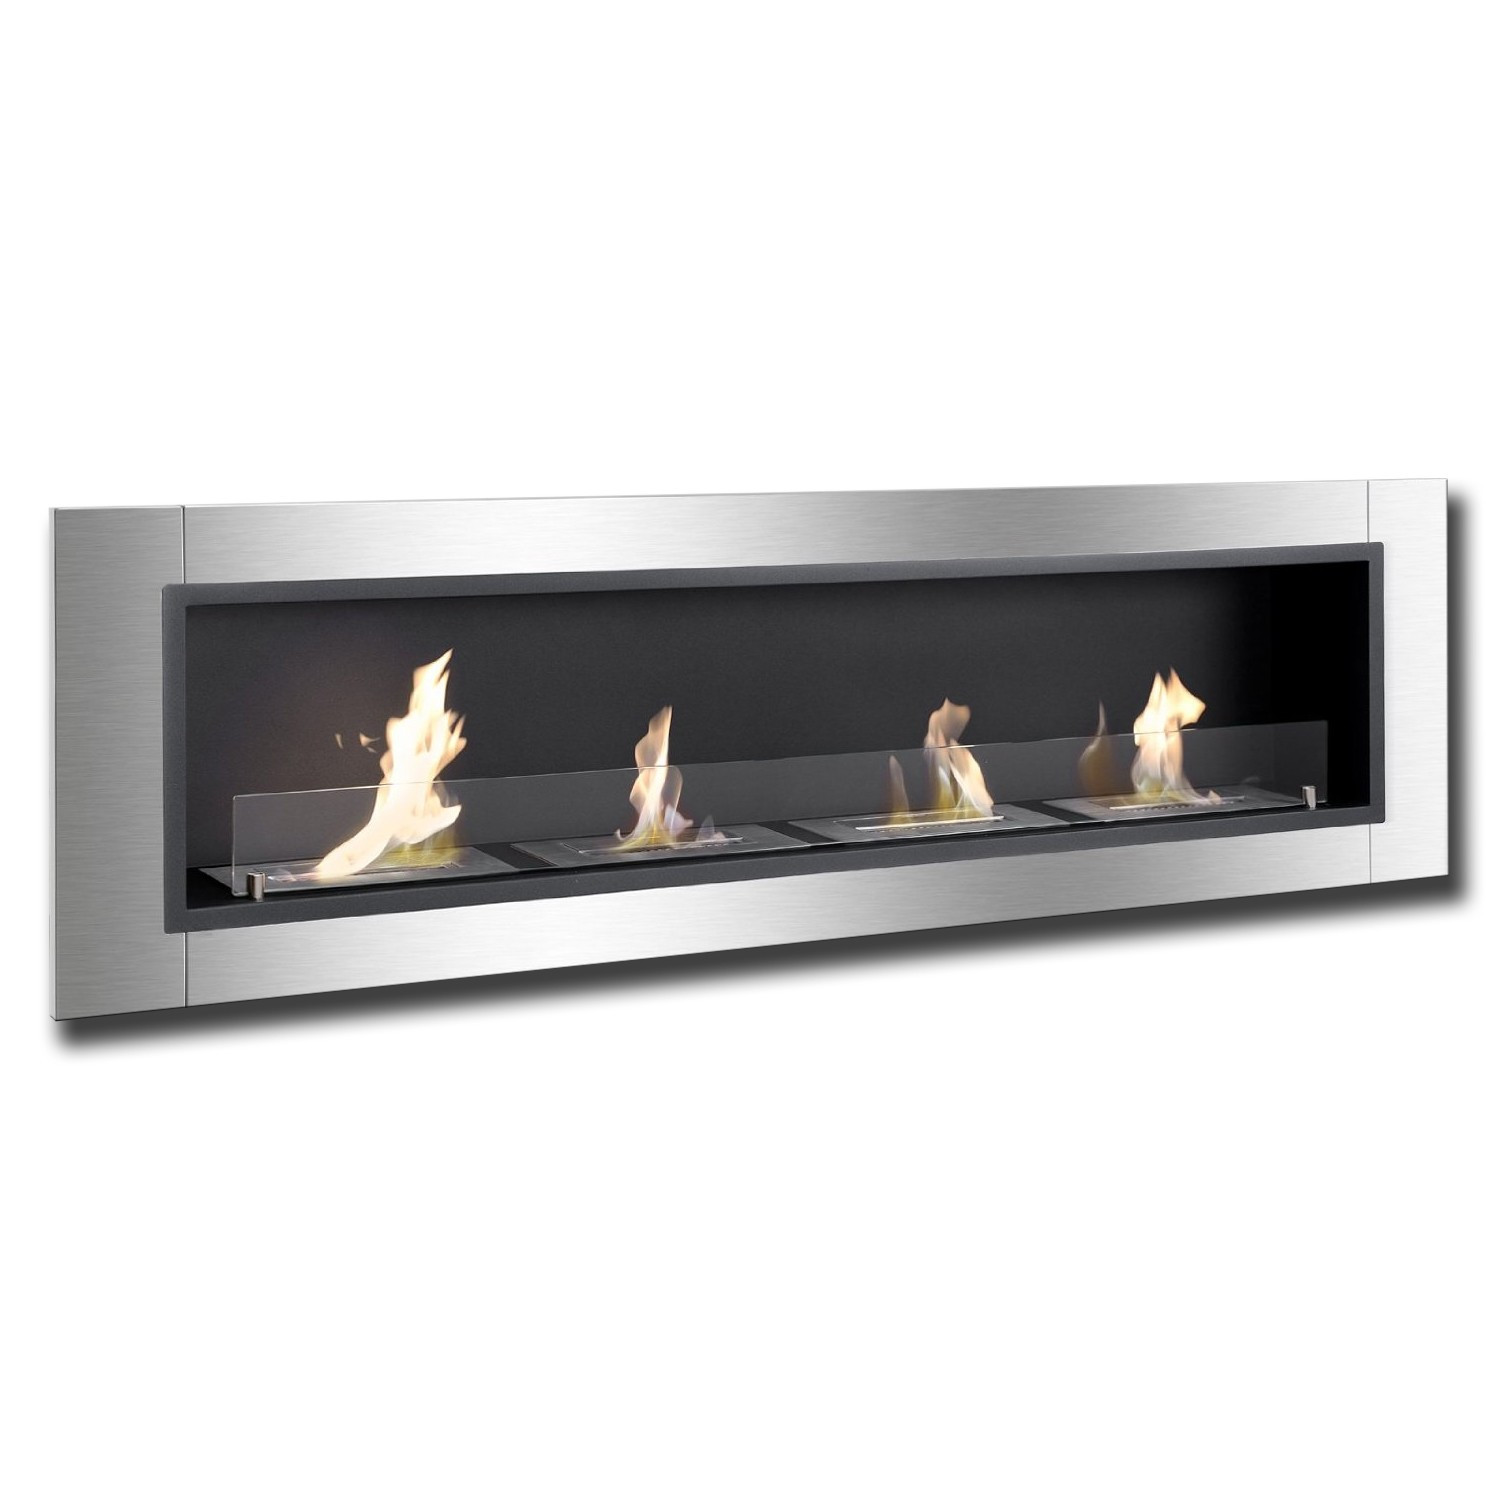 67 Ignis Accalia Wall Mounted Recessed Ventless Ethanol